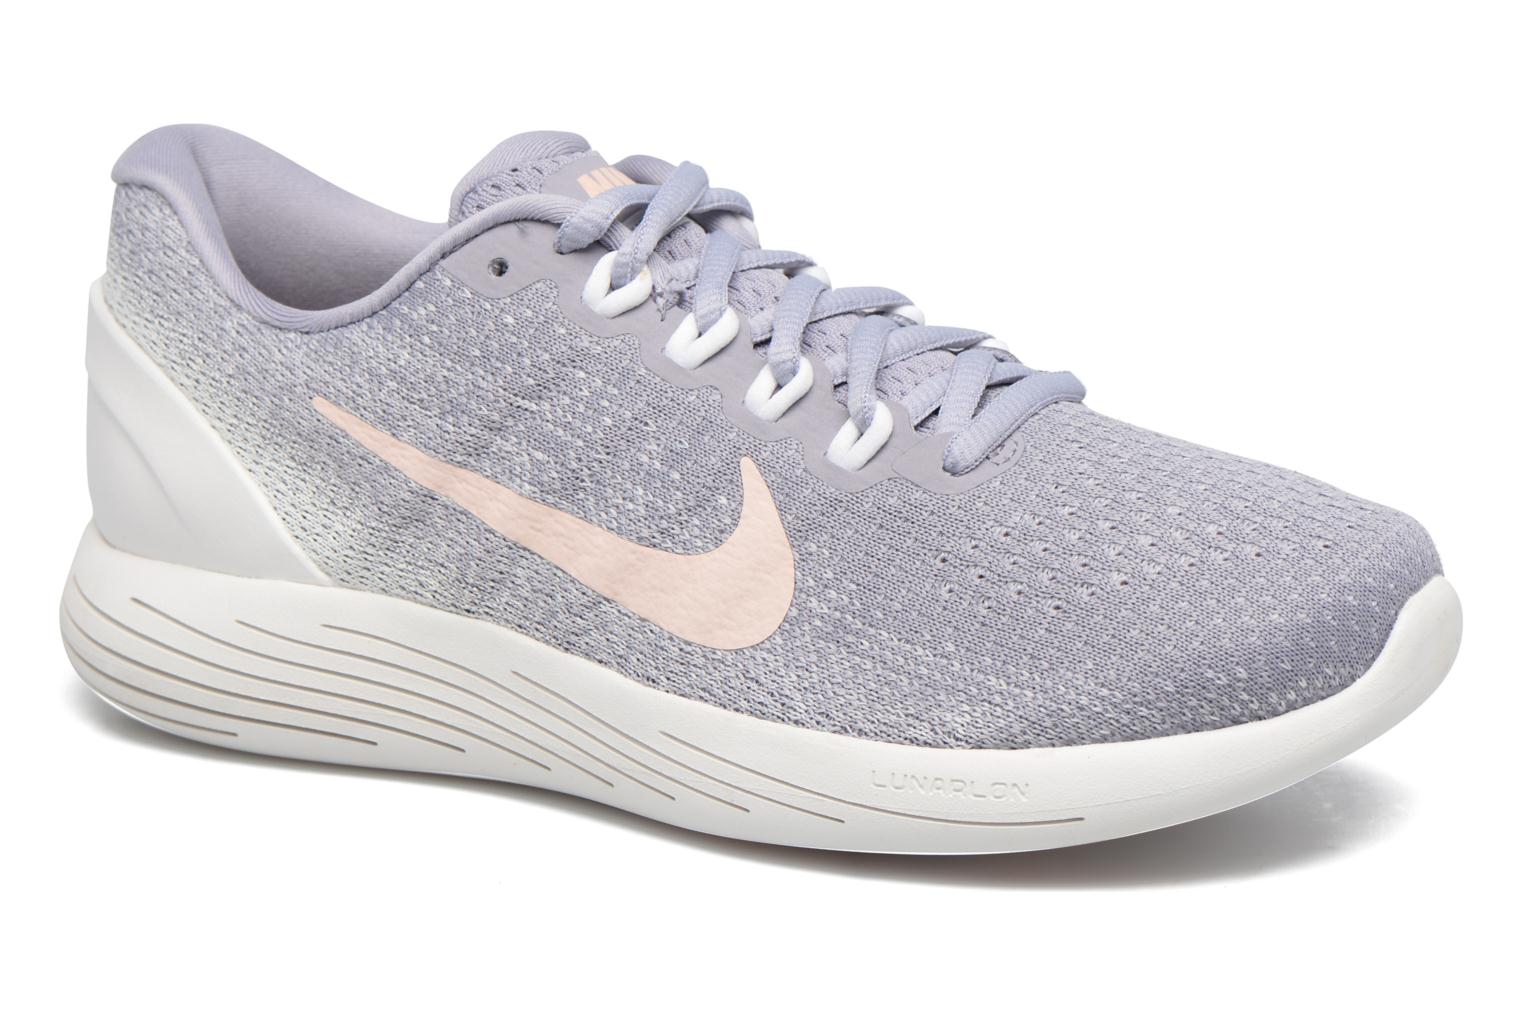 Wmns Nike Lunarglide 9 Provence Purple/Sunset Tint-Summit White